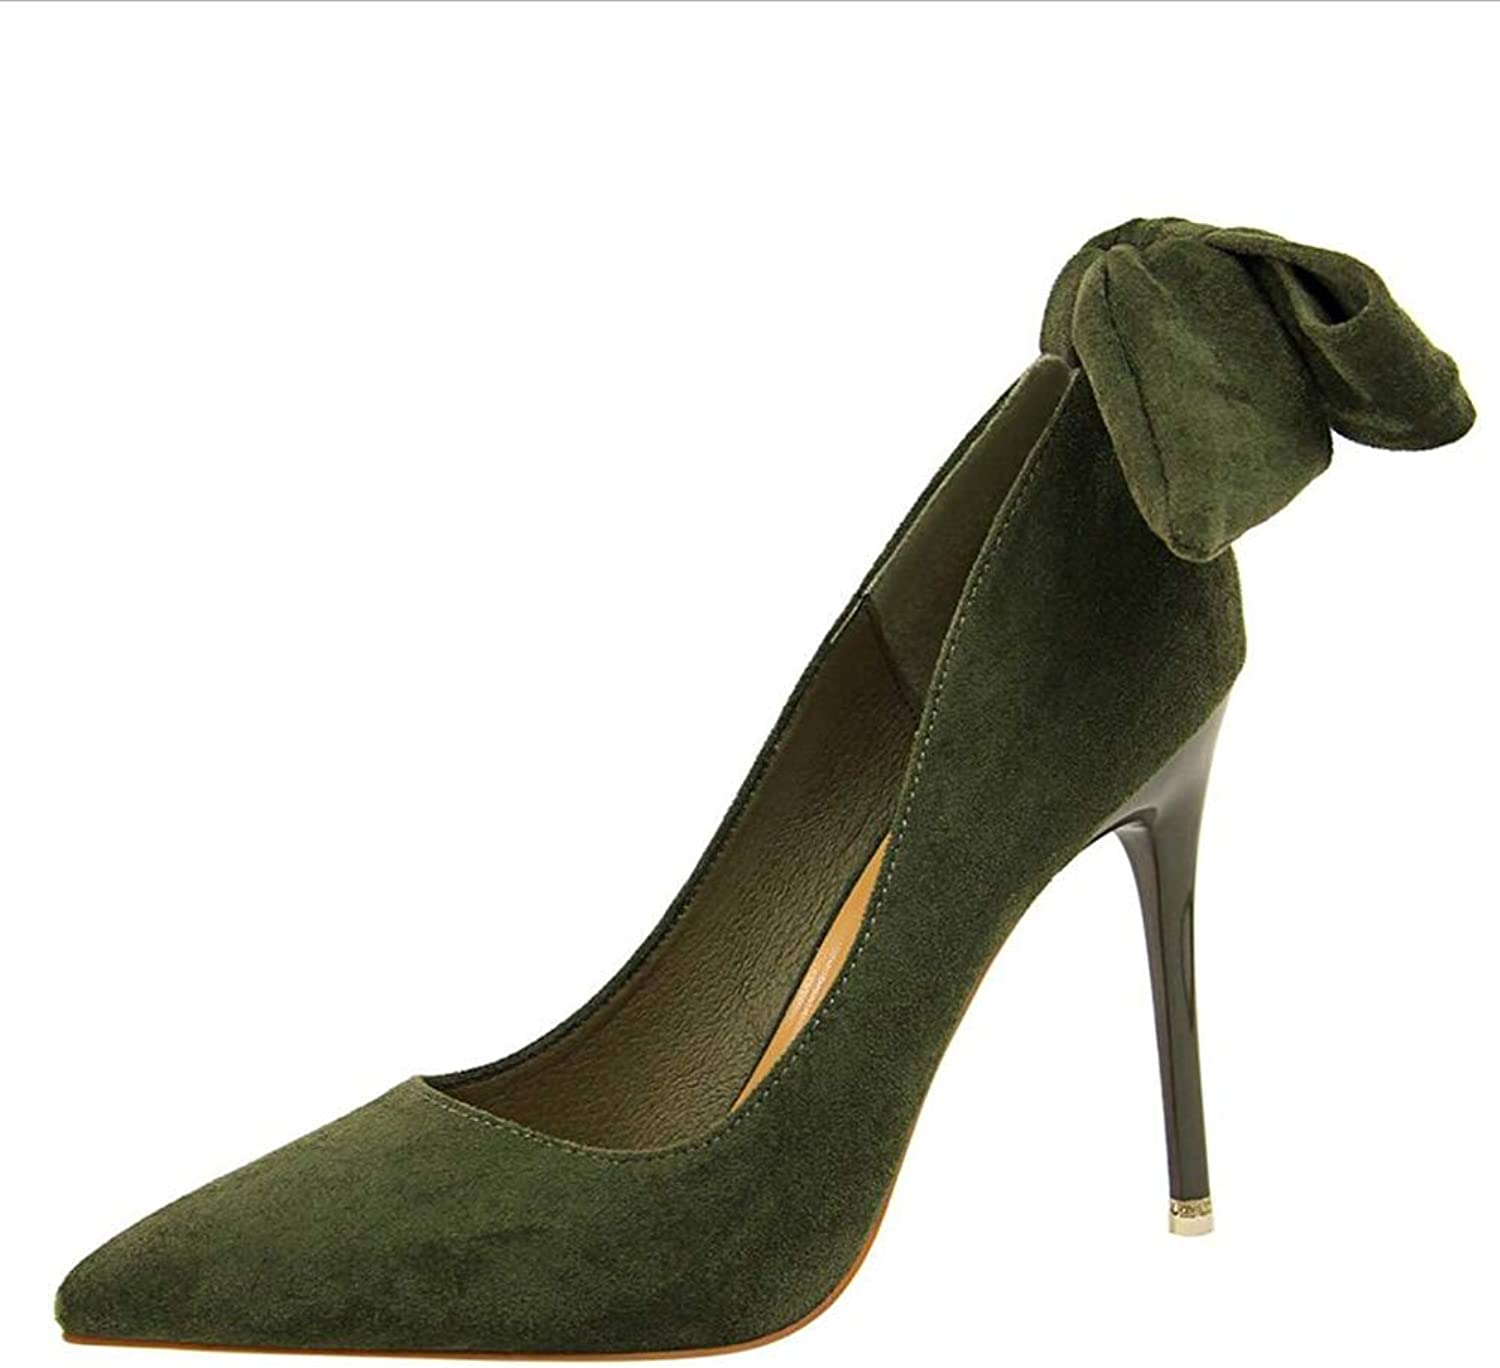 Court shoes Women's shoes shoes High Heel Butterfly Knot shoes European and American Style Super High Heel Suede Shallow Mouth Haiming (color   Green, Size   37)